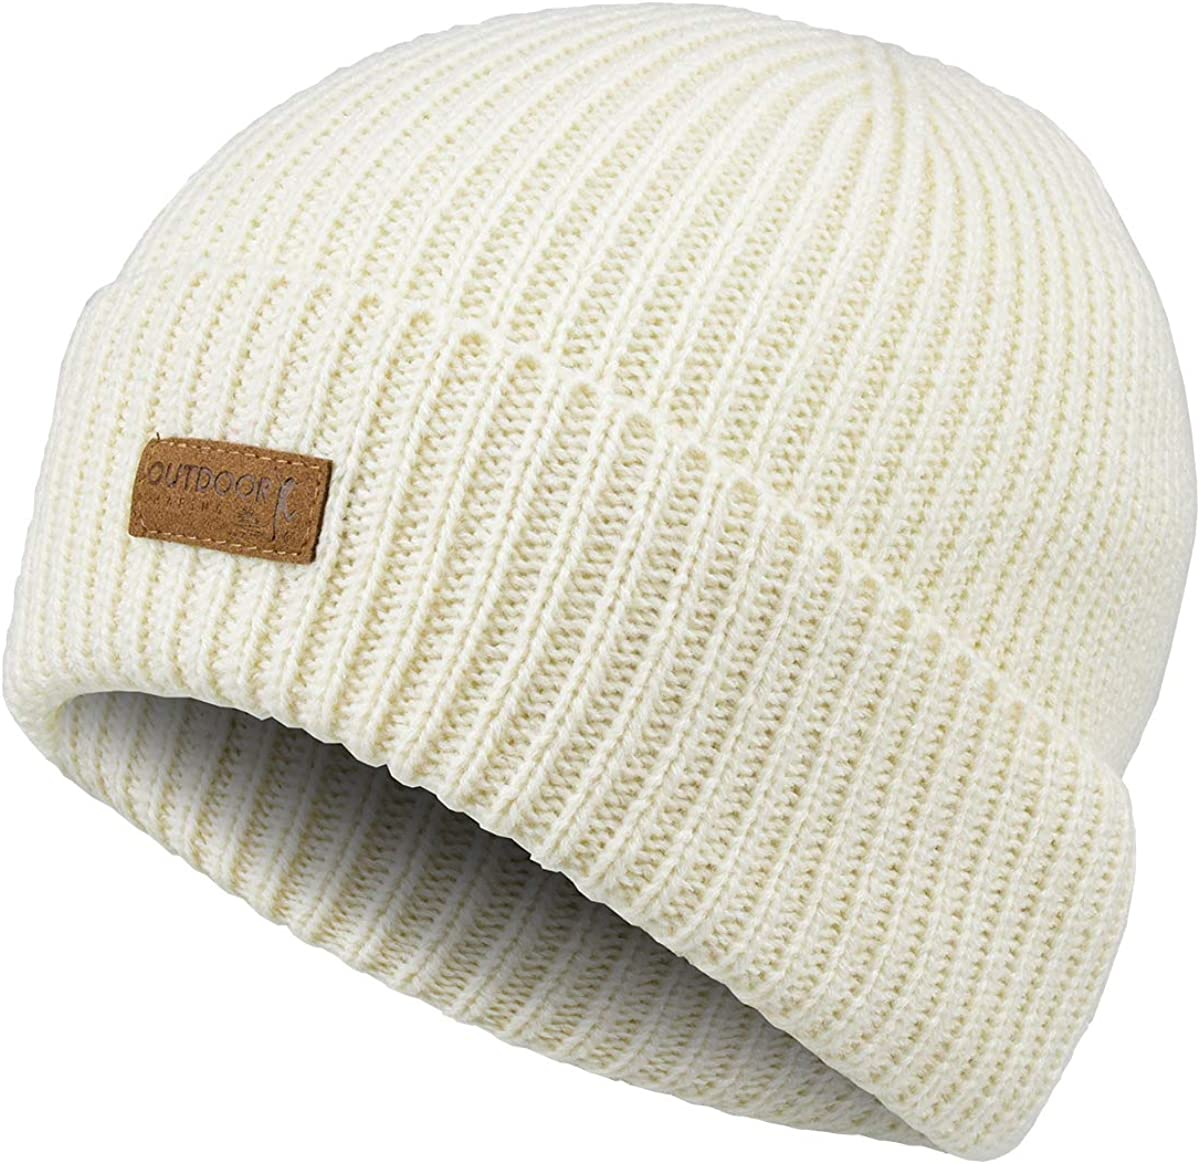 OUTDOOR SHAPING Winter Wool Beanie Knit Hat for Men & Women Ribbed Cuff Beanie Cap